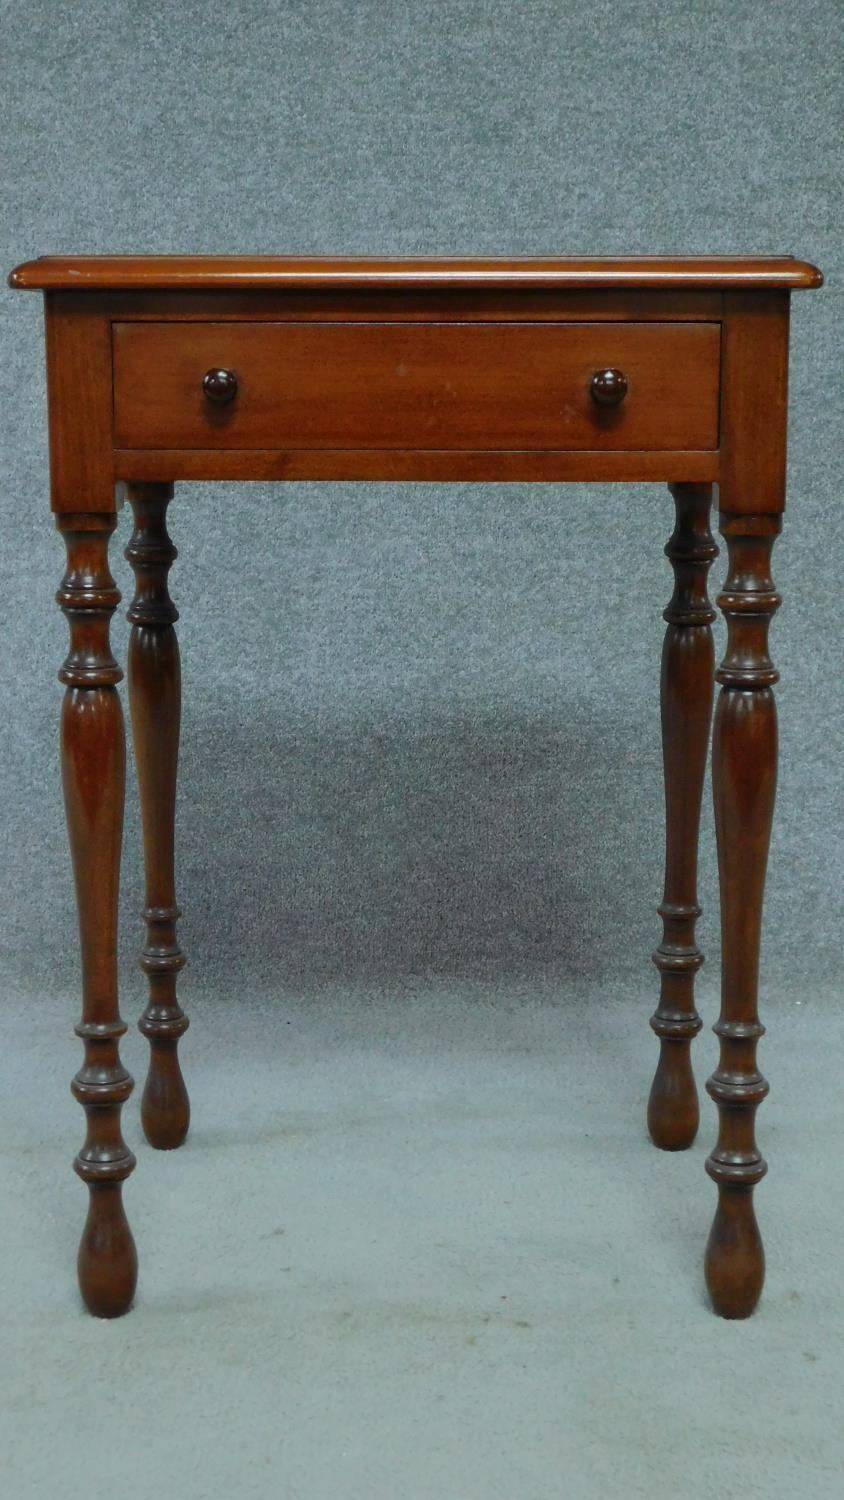 A late 19th century mahogany bedside table with frieze drawer, raised on turned tapering supports.